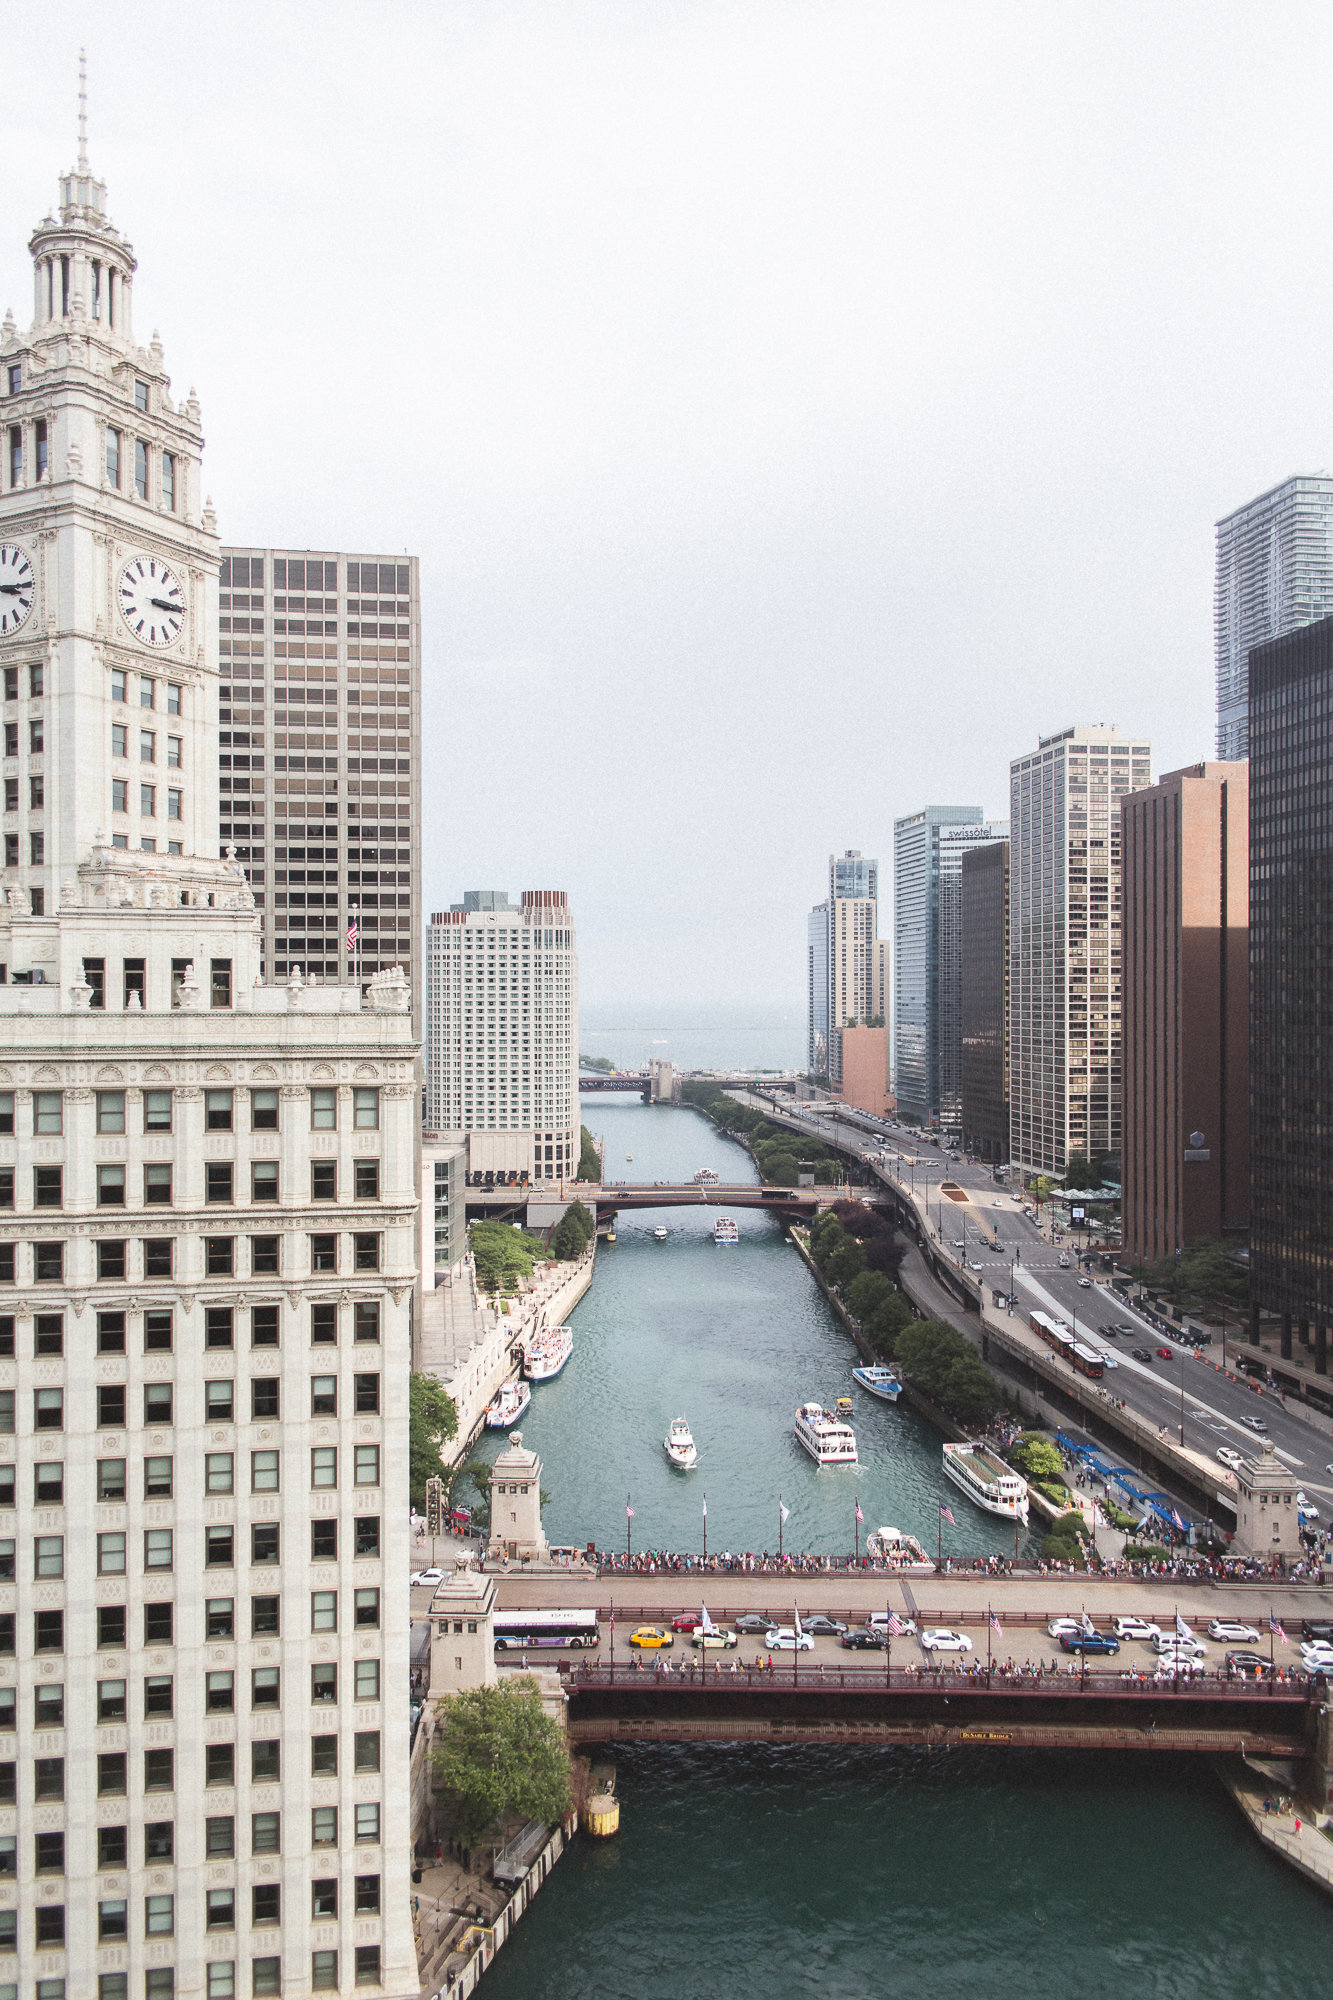 Chicago Illinois - DiBlasio Photography-3